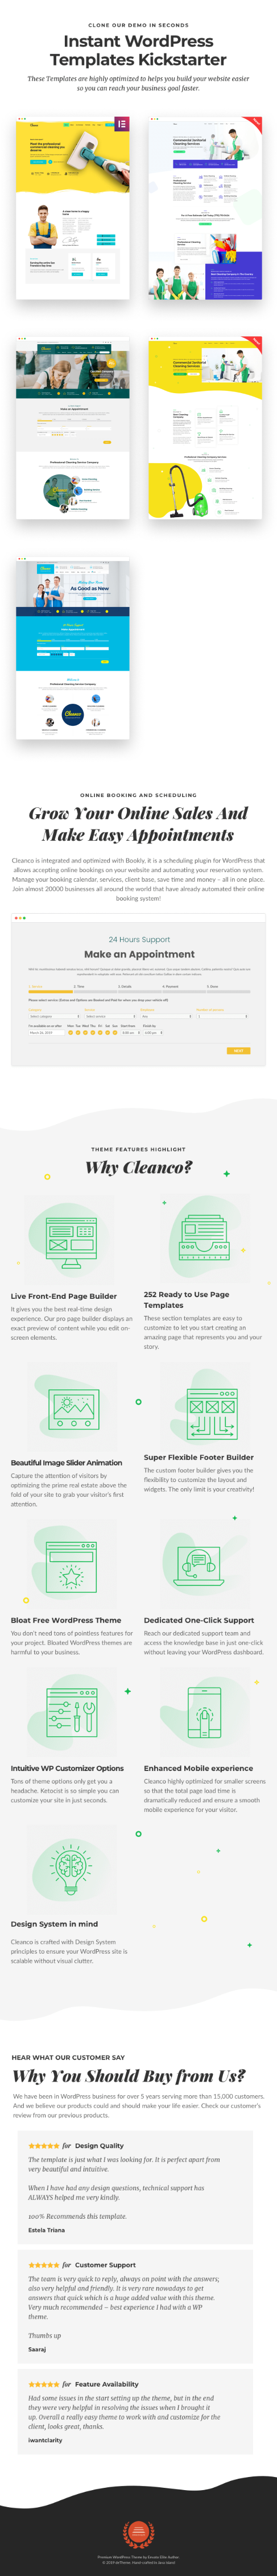 Cleanco 3.0 - Cleaning Service Company WordPress Theme - 1